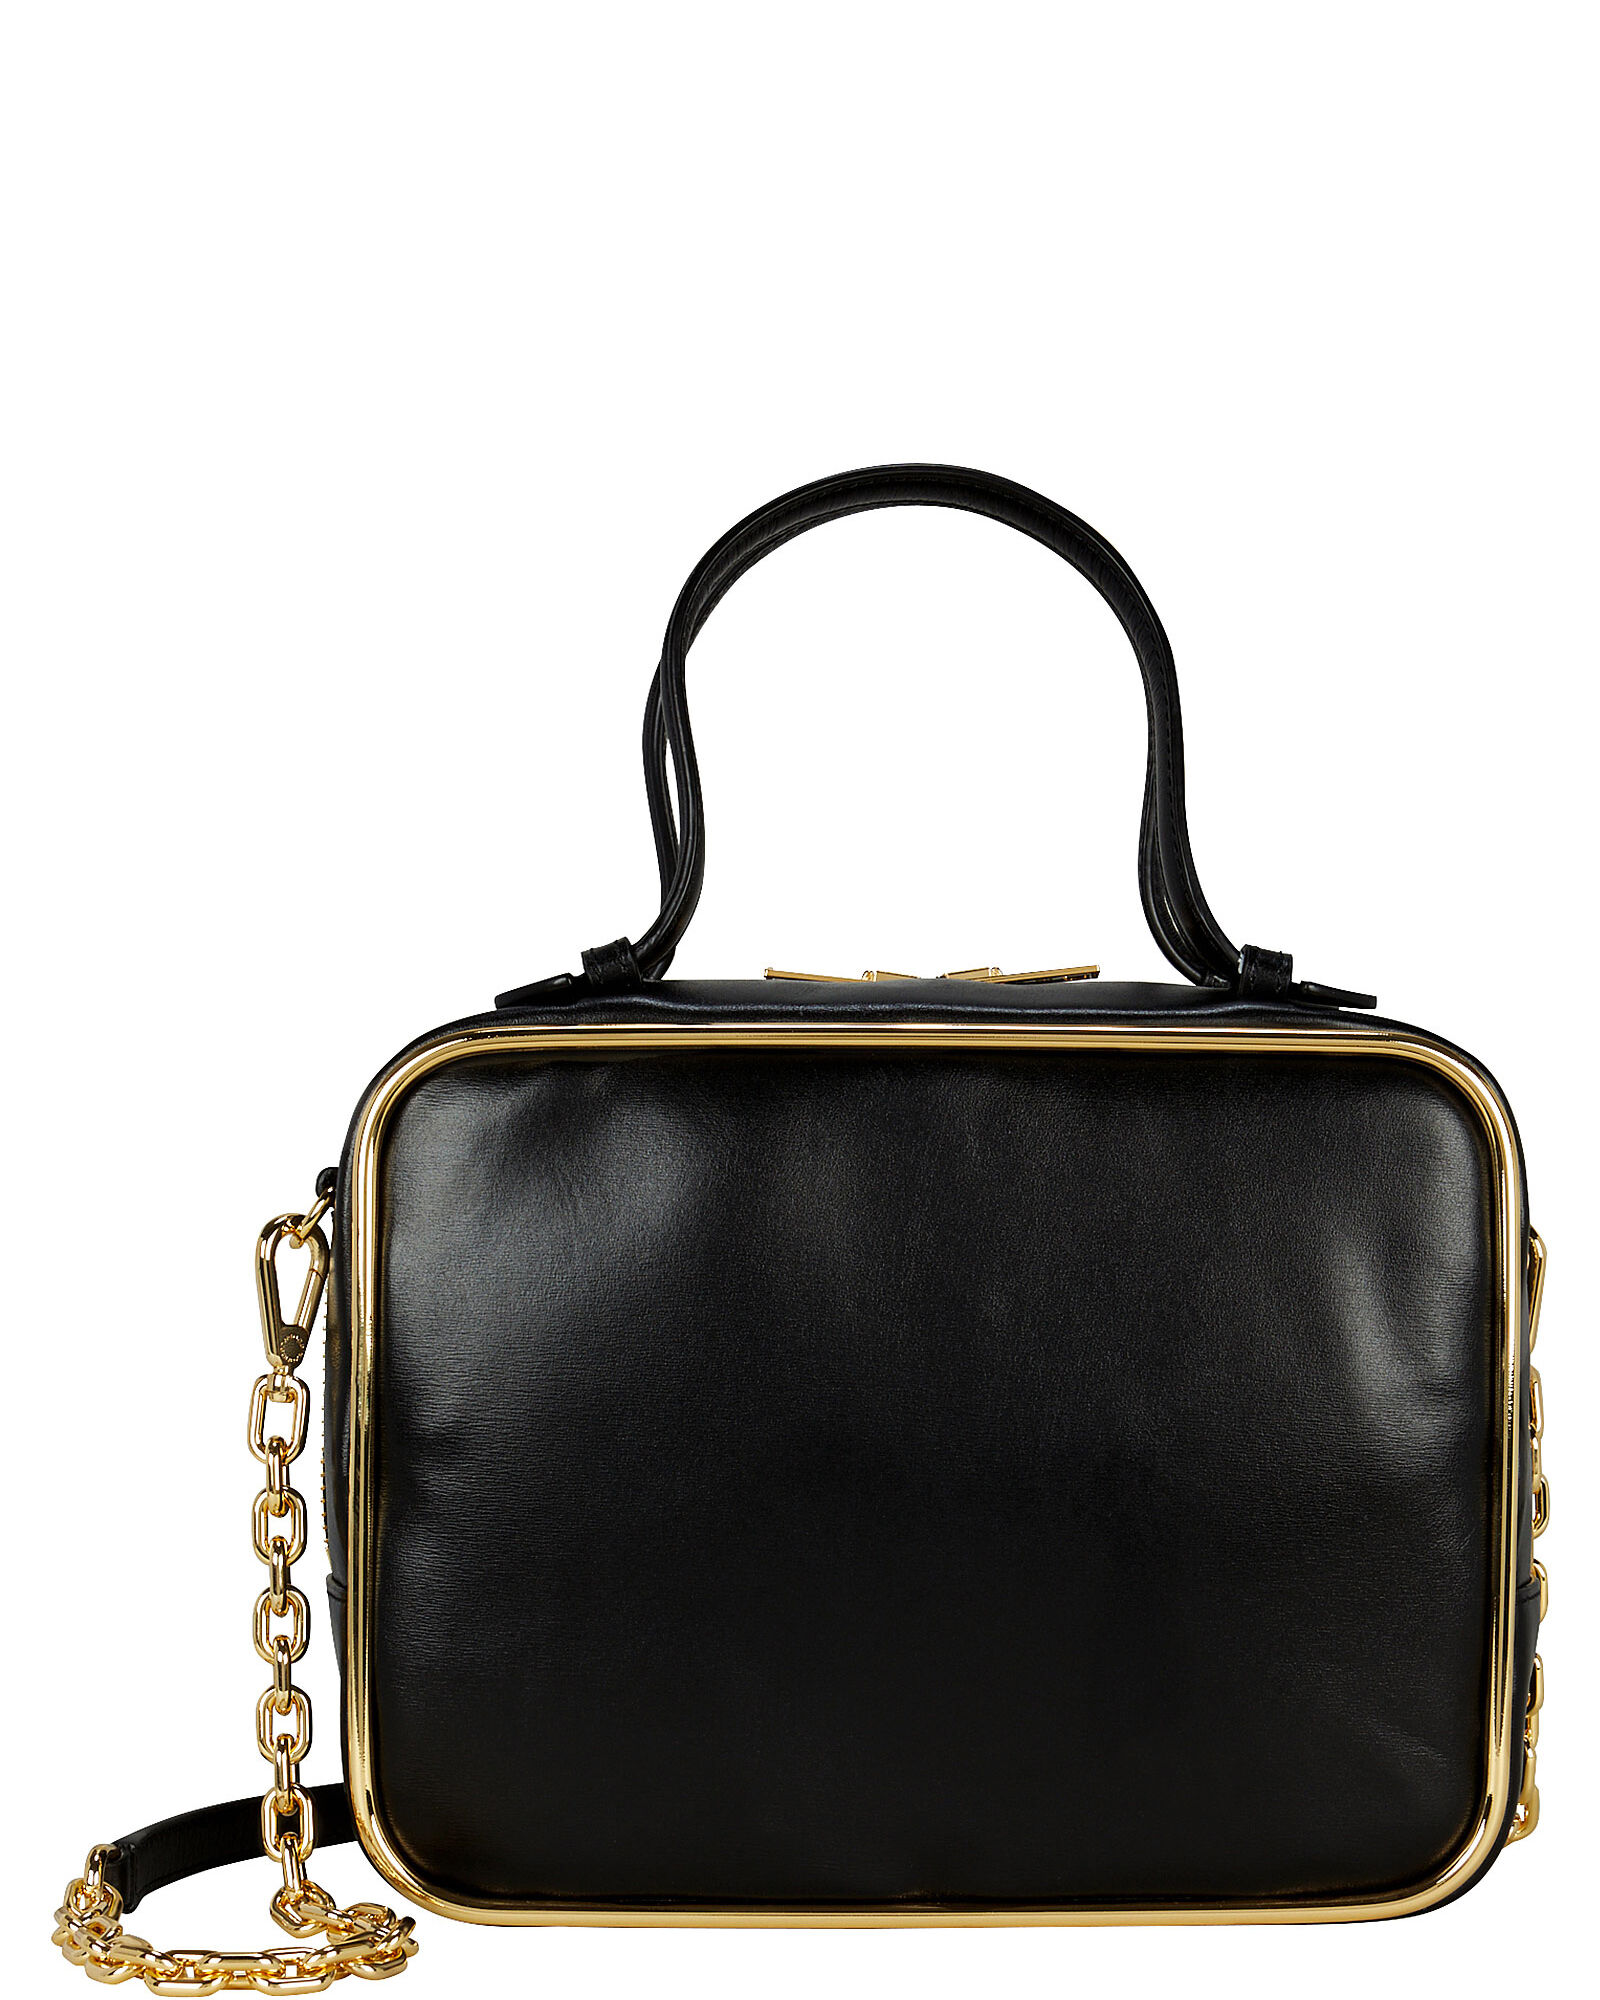 Halo Square Leather Bag, BLACK, hi-res